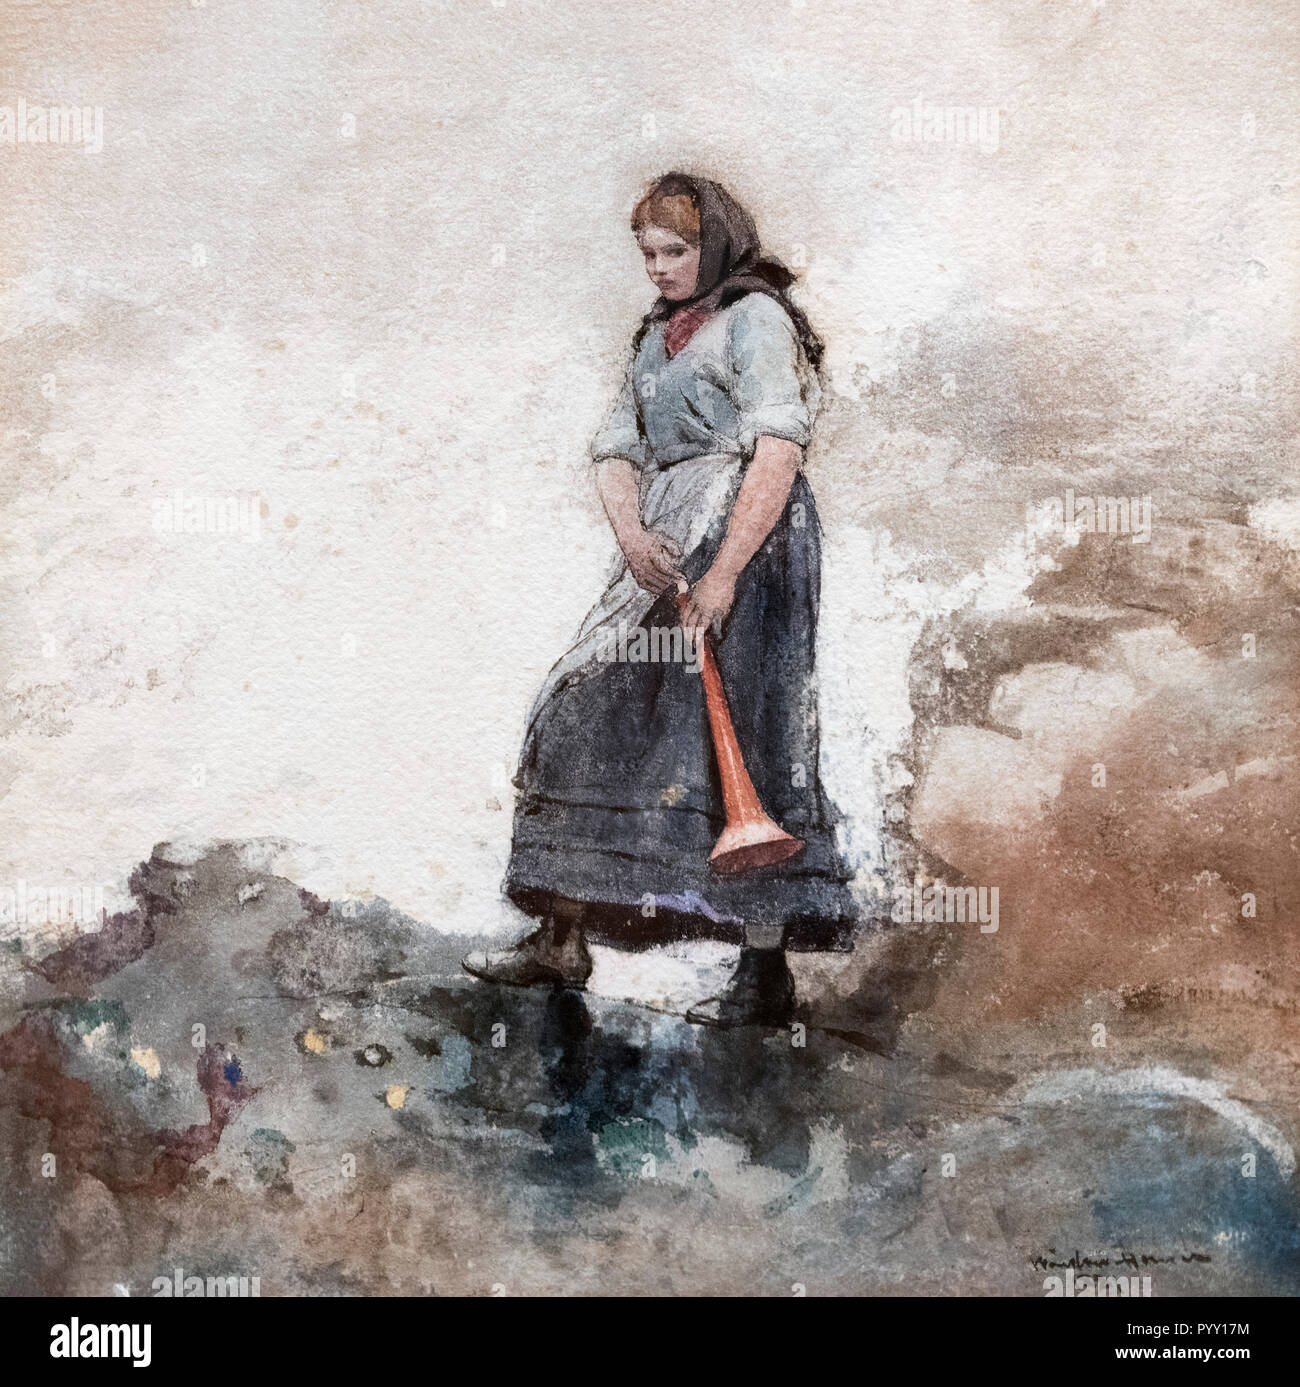 The Coastguard's Daughter by Winslow Homer (1836-1910), watercolor on paper, 1881 - Stock Image